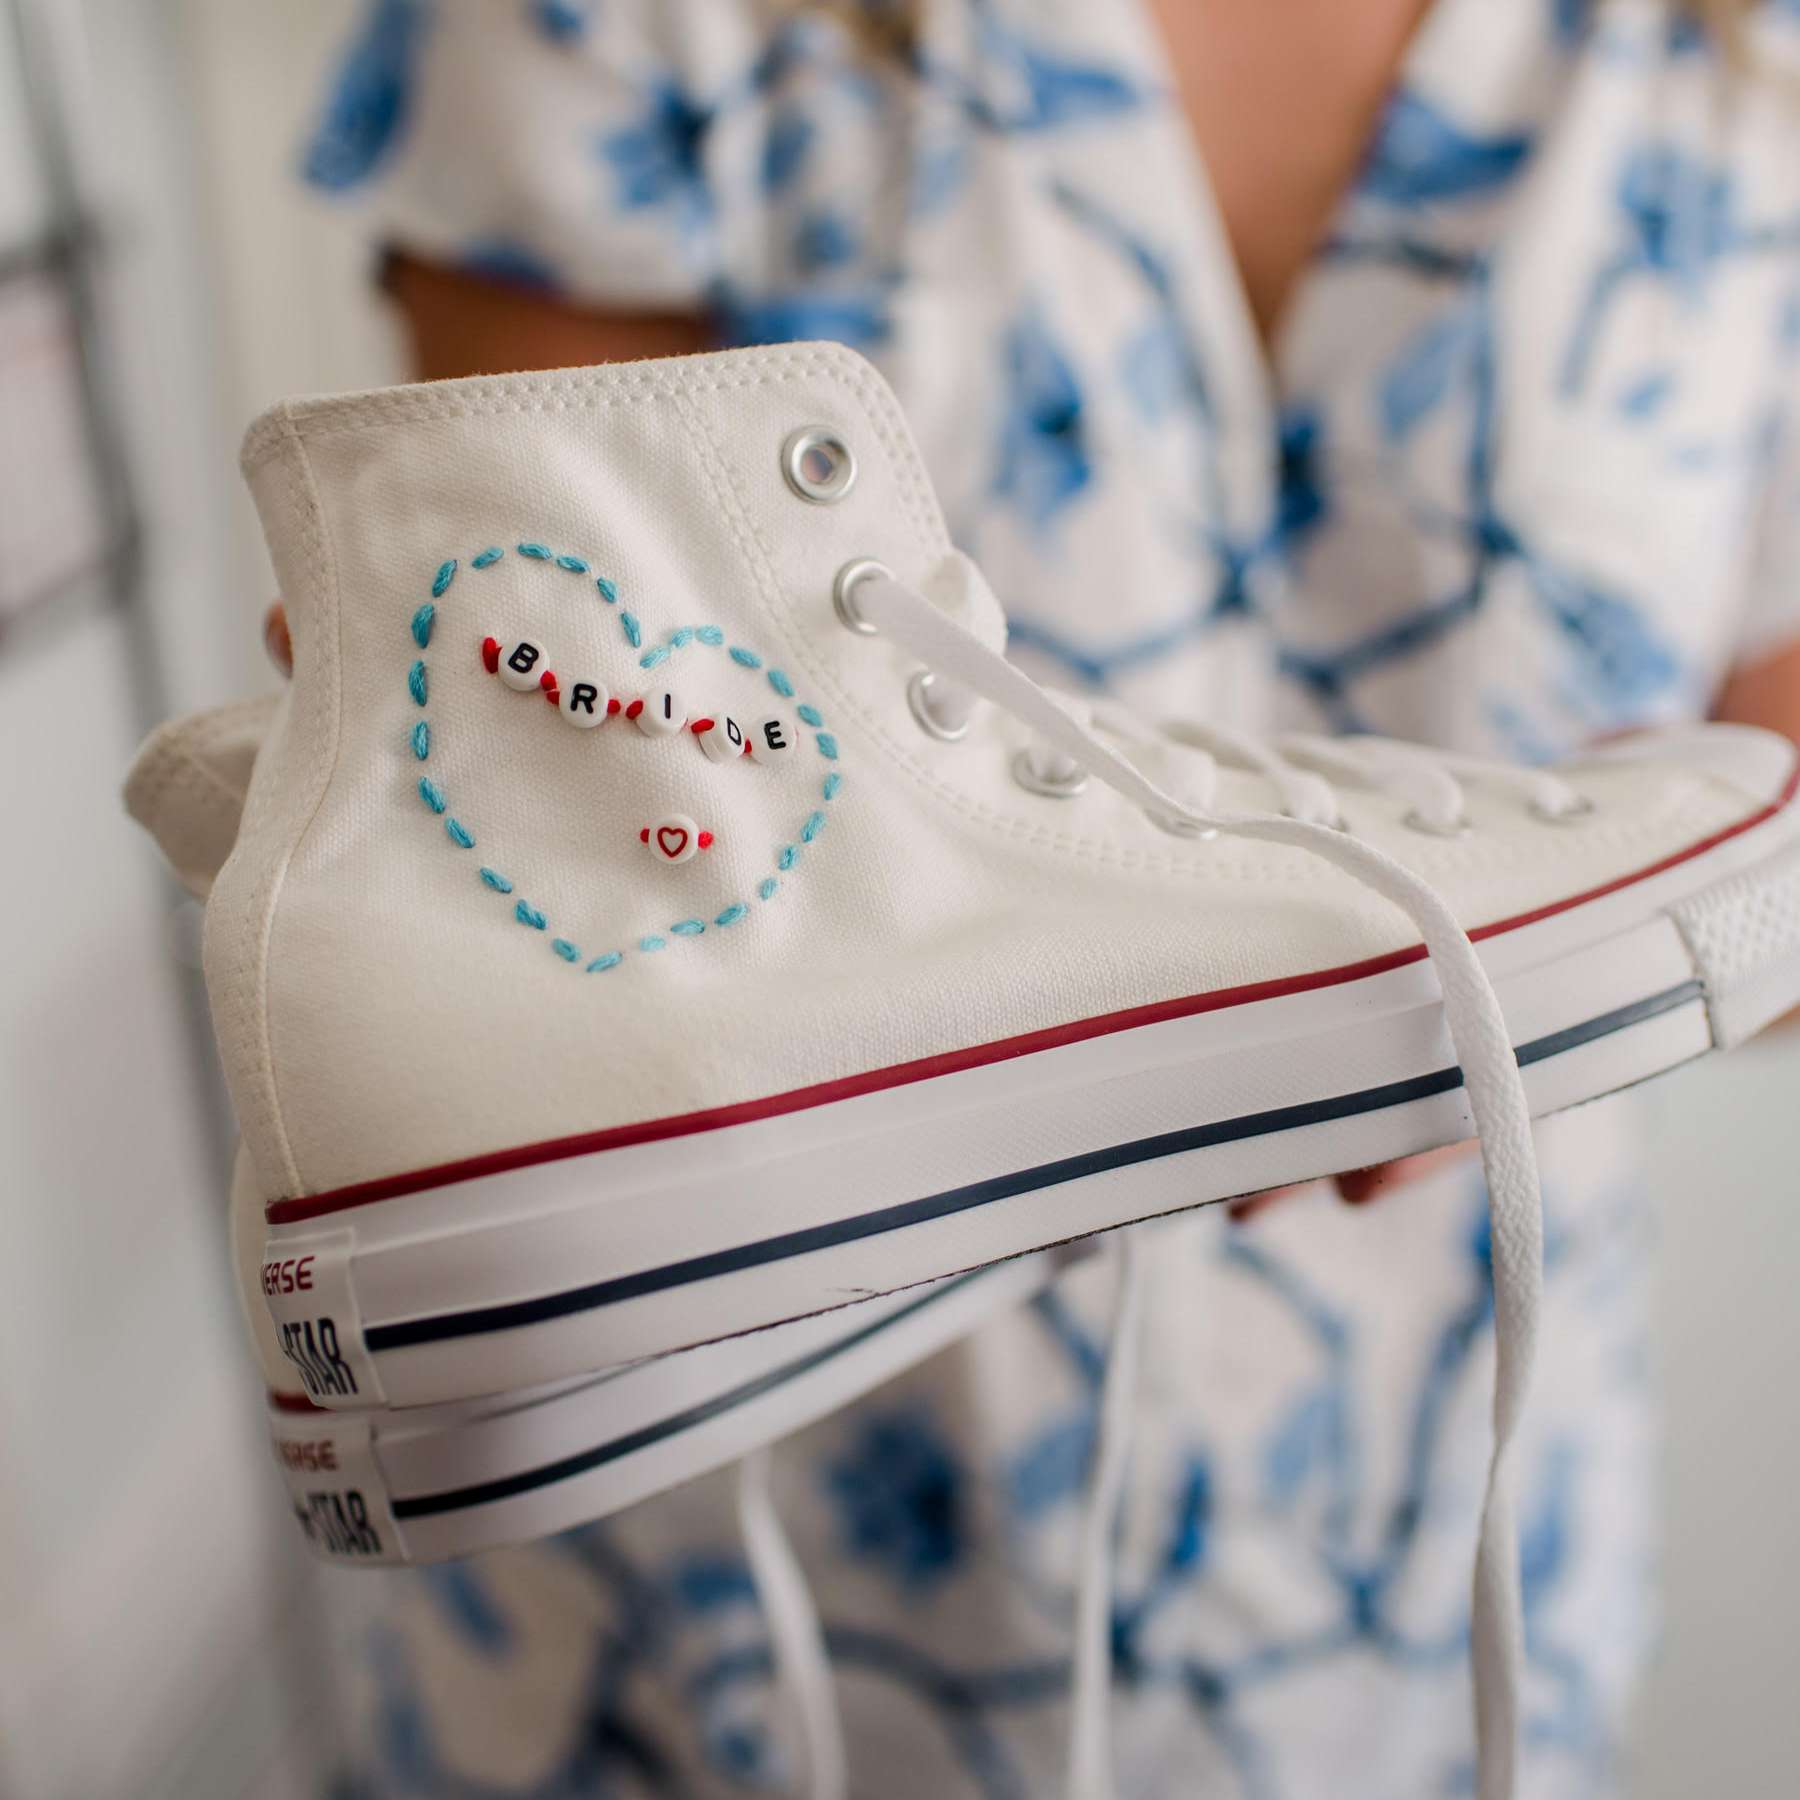 Bride holding a white Converse sneaker with